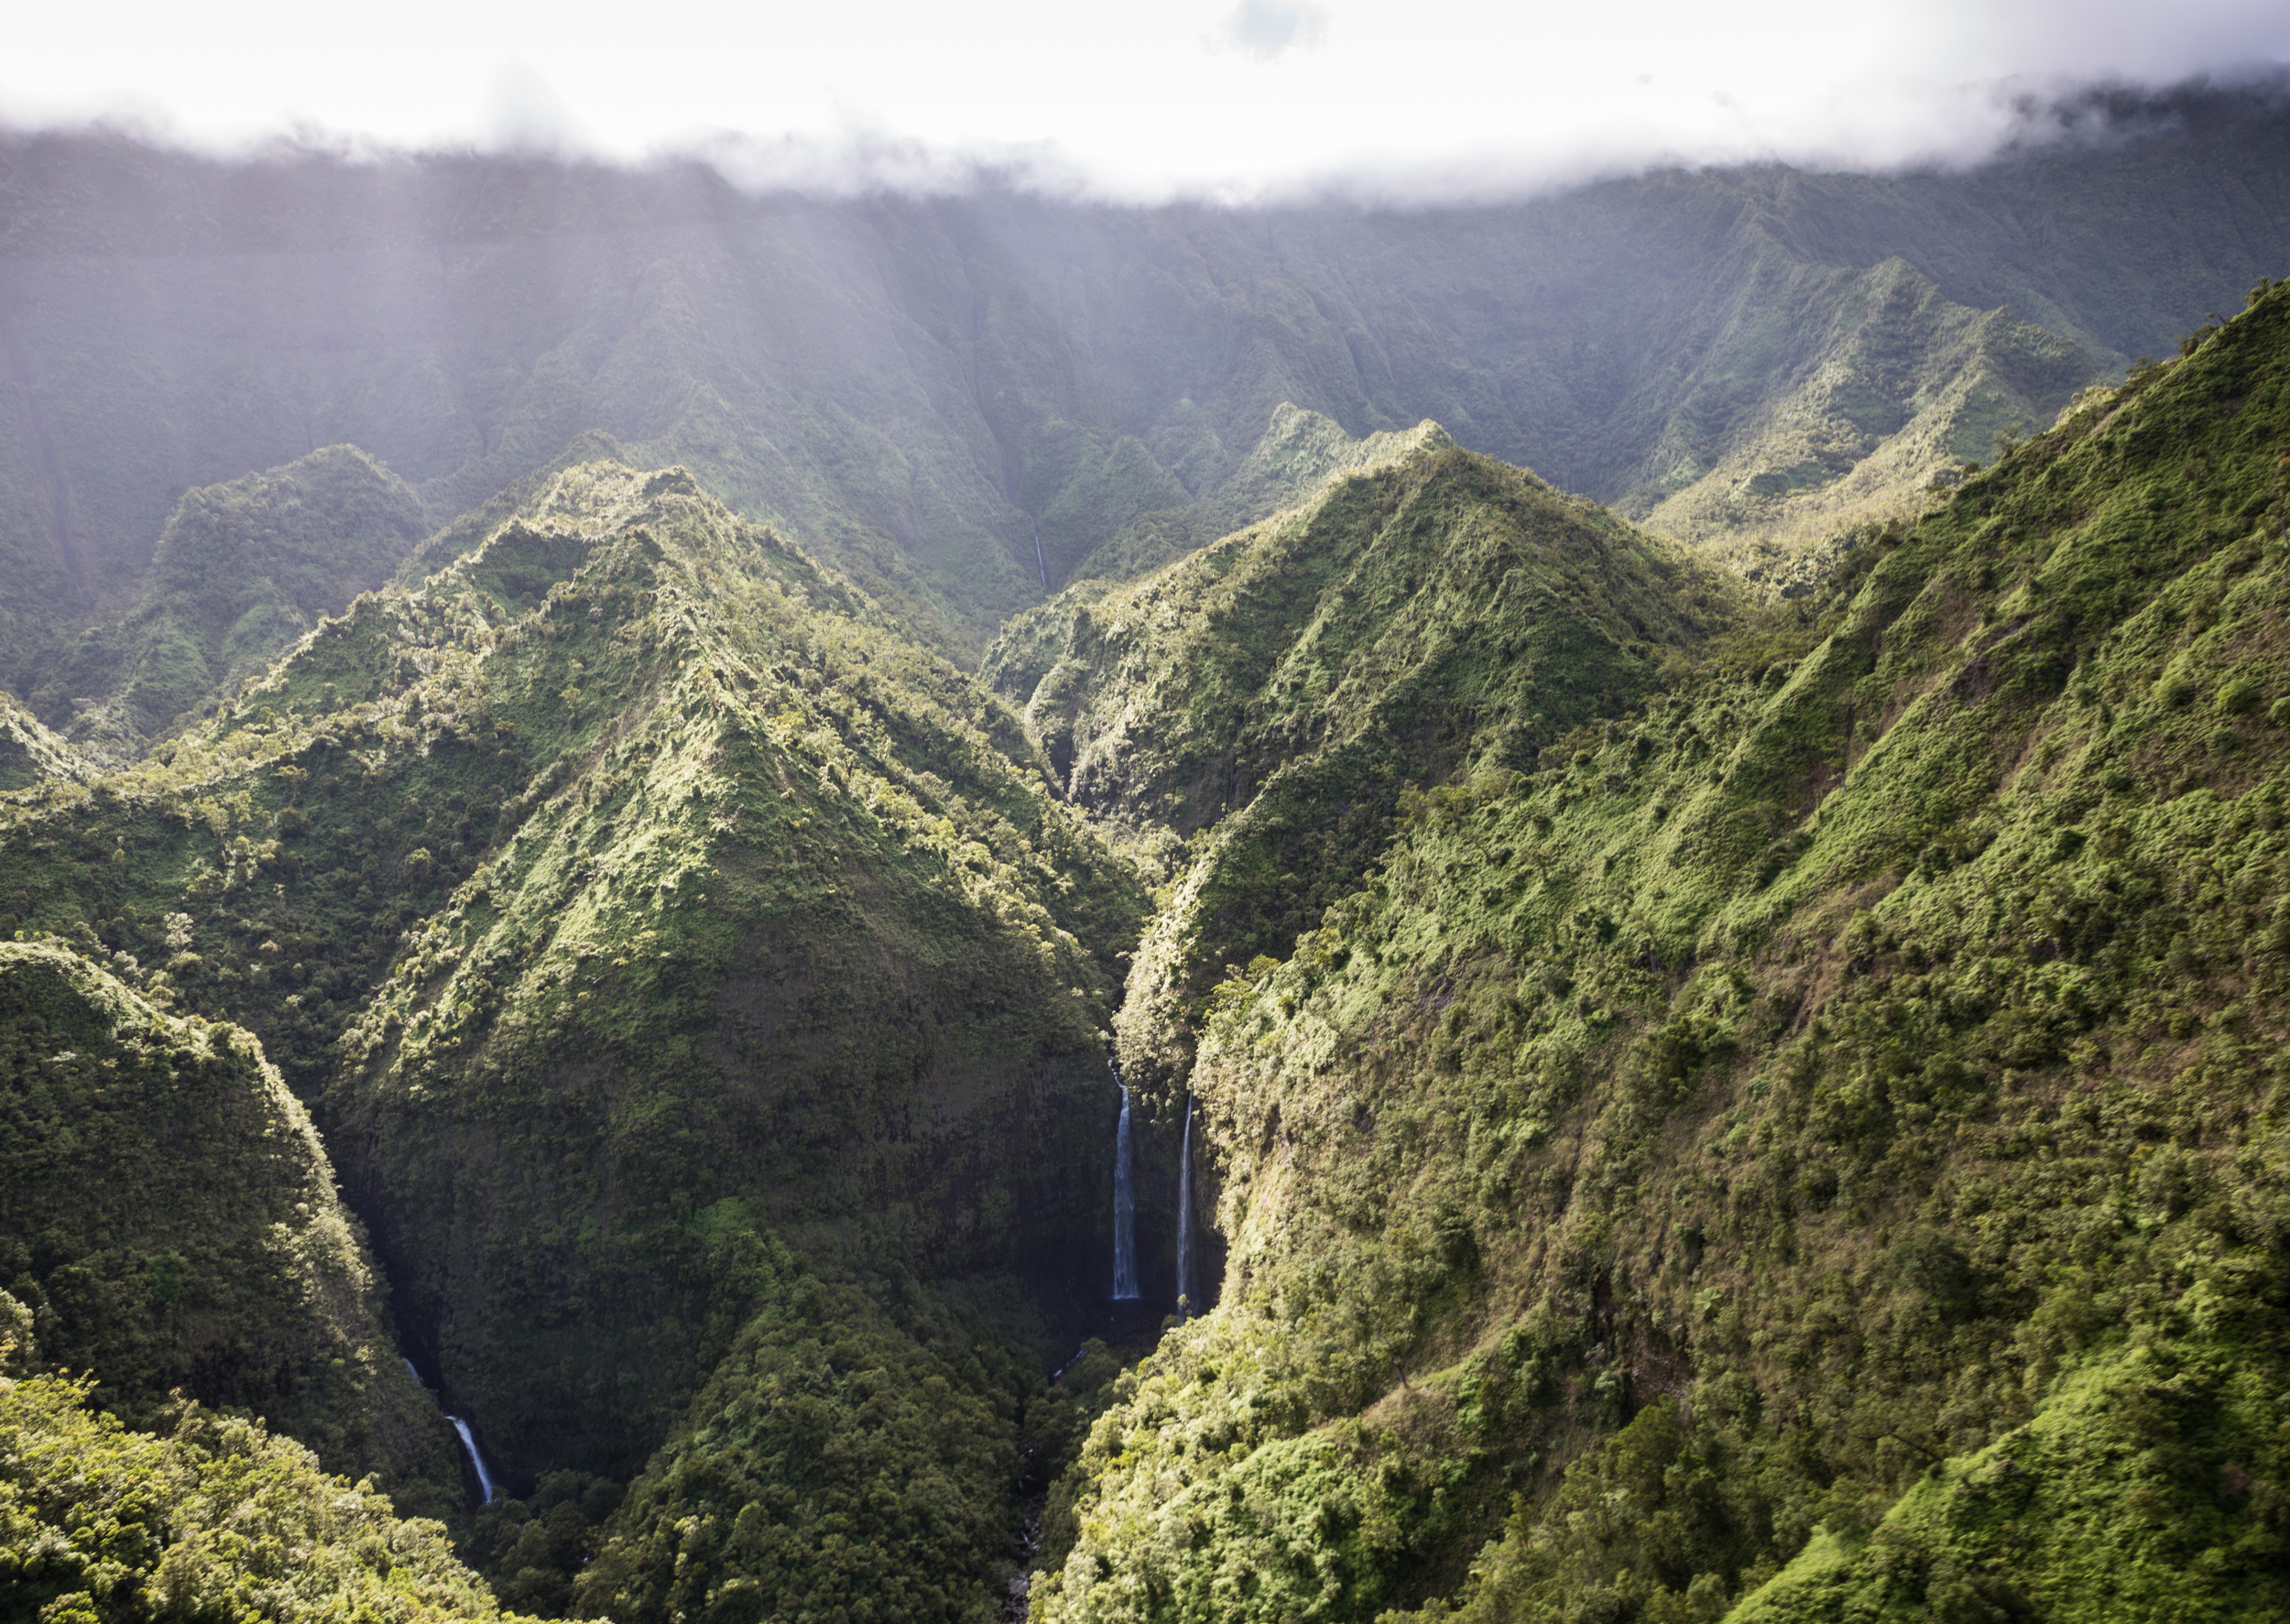 the national parks girl_Kauai_hawaii_canon6d_jack harter helicopter ride_doors off heli ride_jurassic park_waterfall.JPG